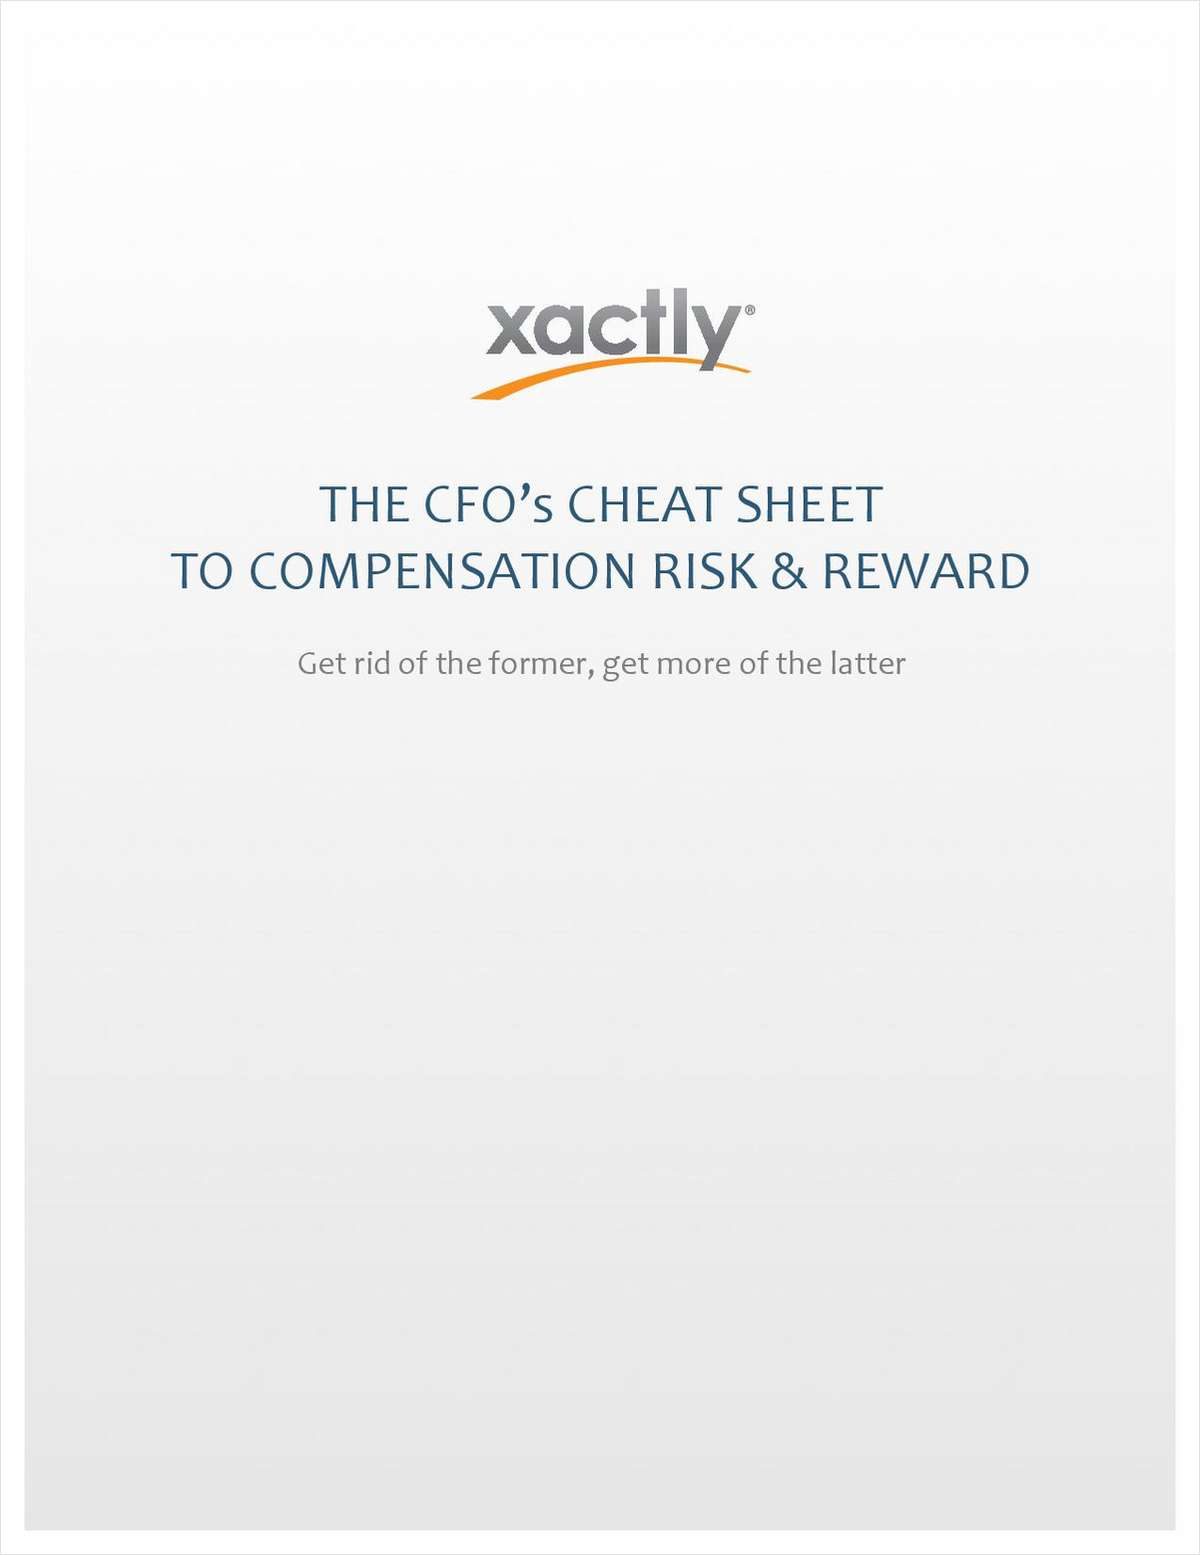 The CFO's Cheat Sheet to Compensation Risk & Reward